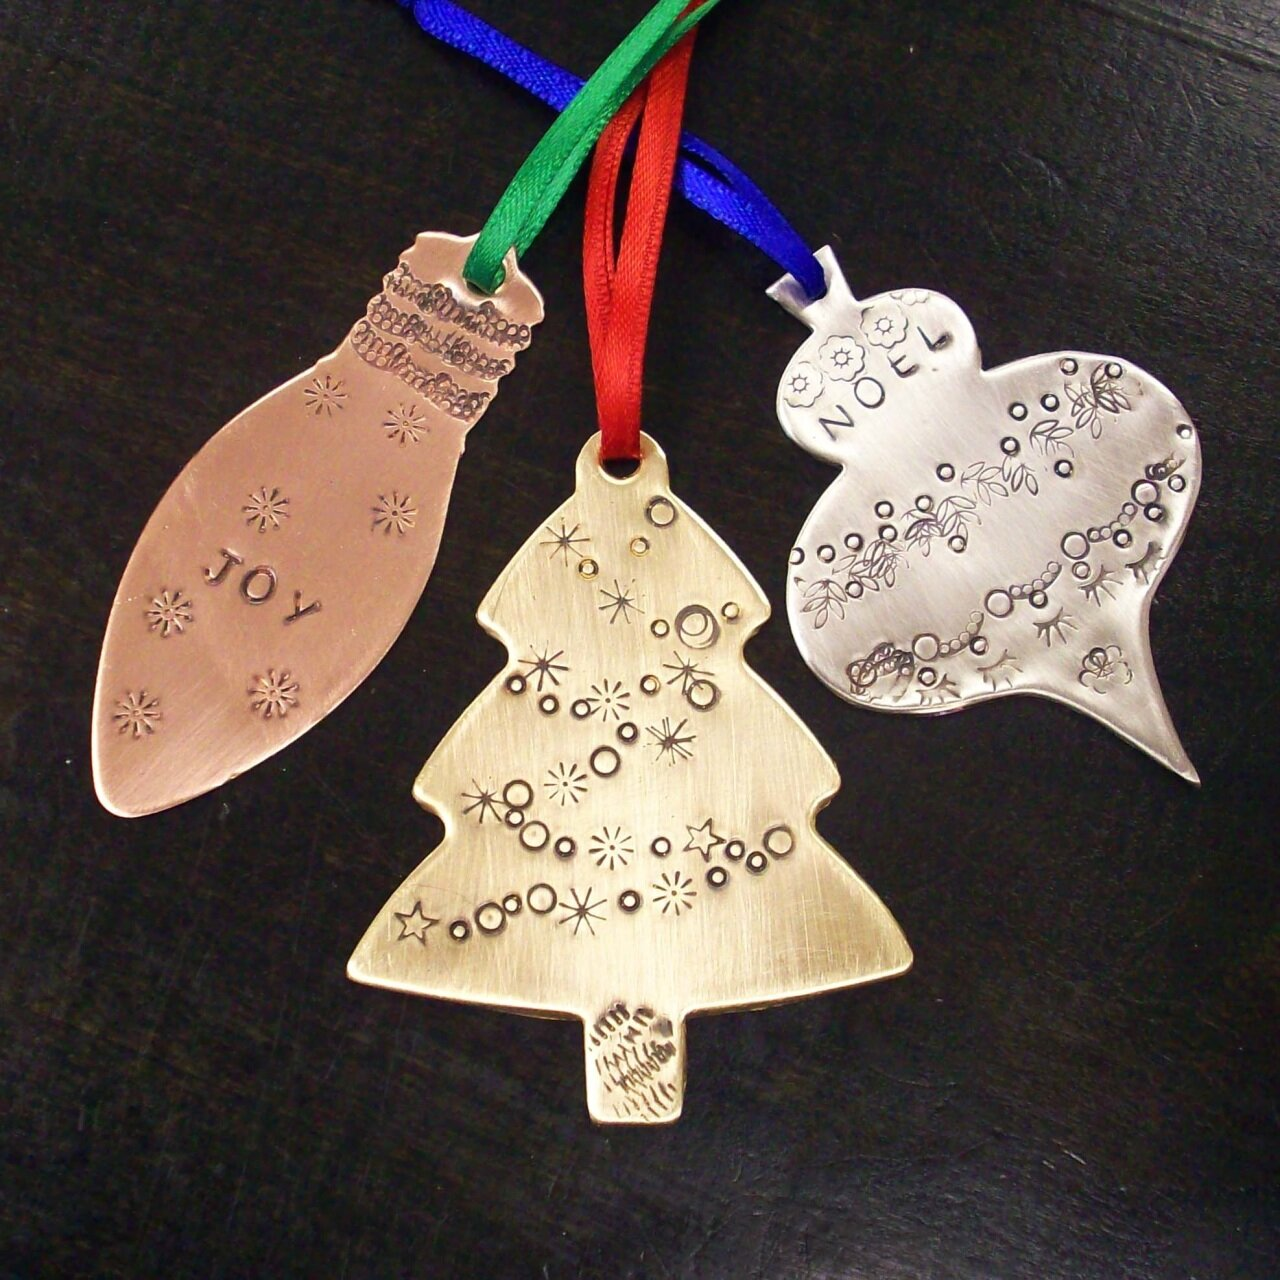 Drop-In Ornament Stamping - Flux Metal Arts Center8827 Mentor Ave., Suite A, Mentor, Ohio 44060Saturday, December 14th 10-4pm